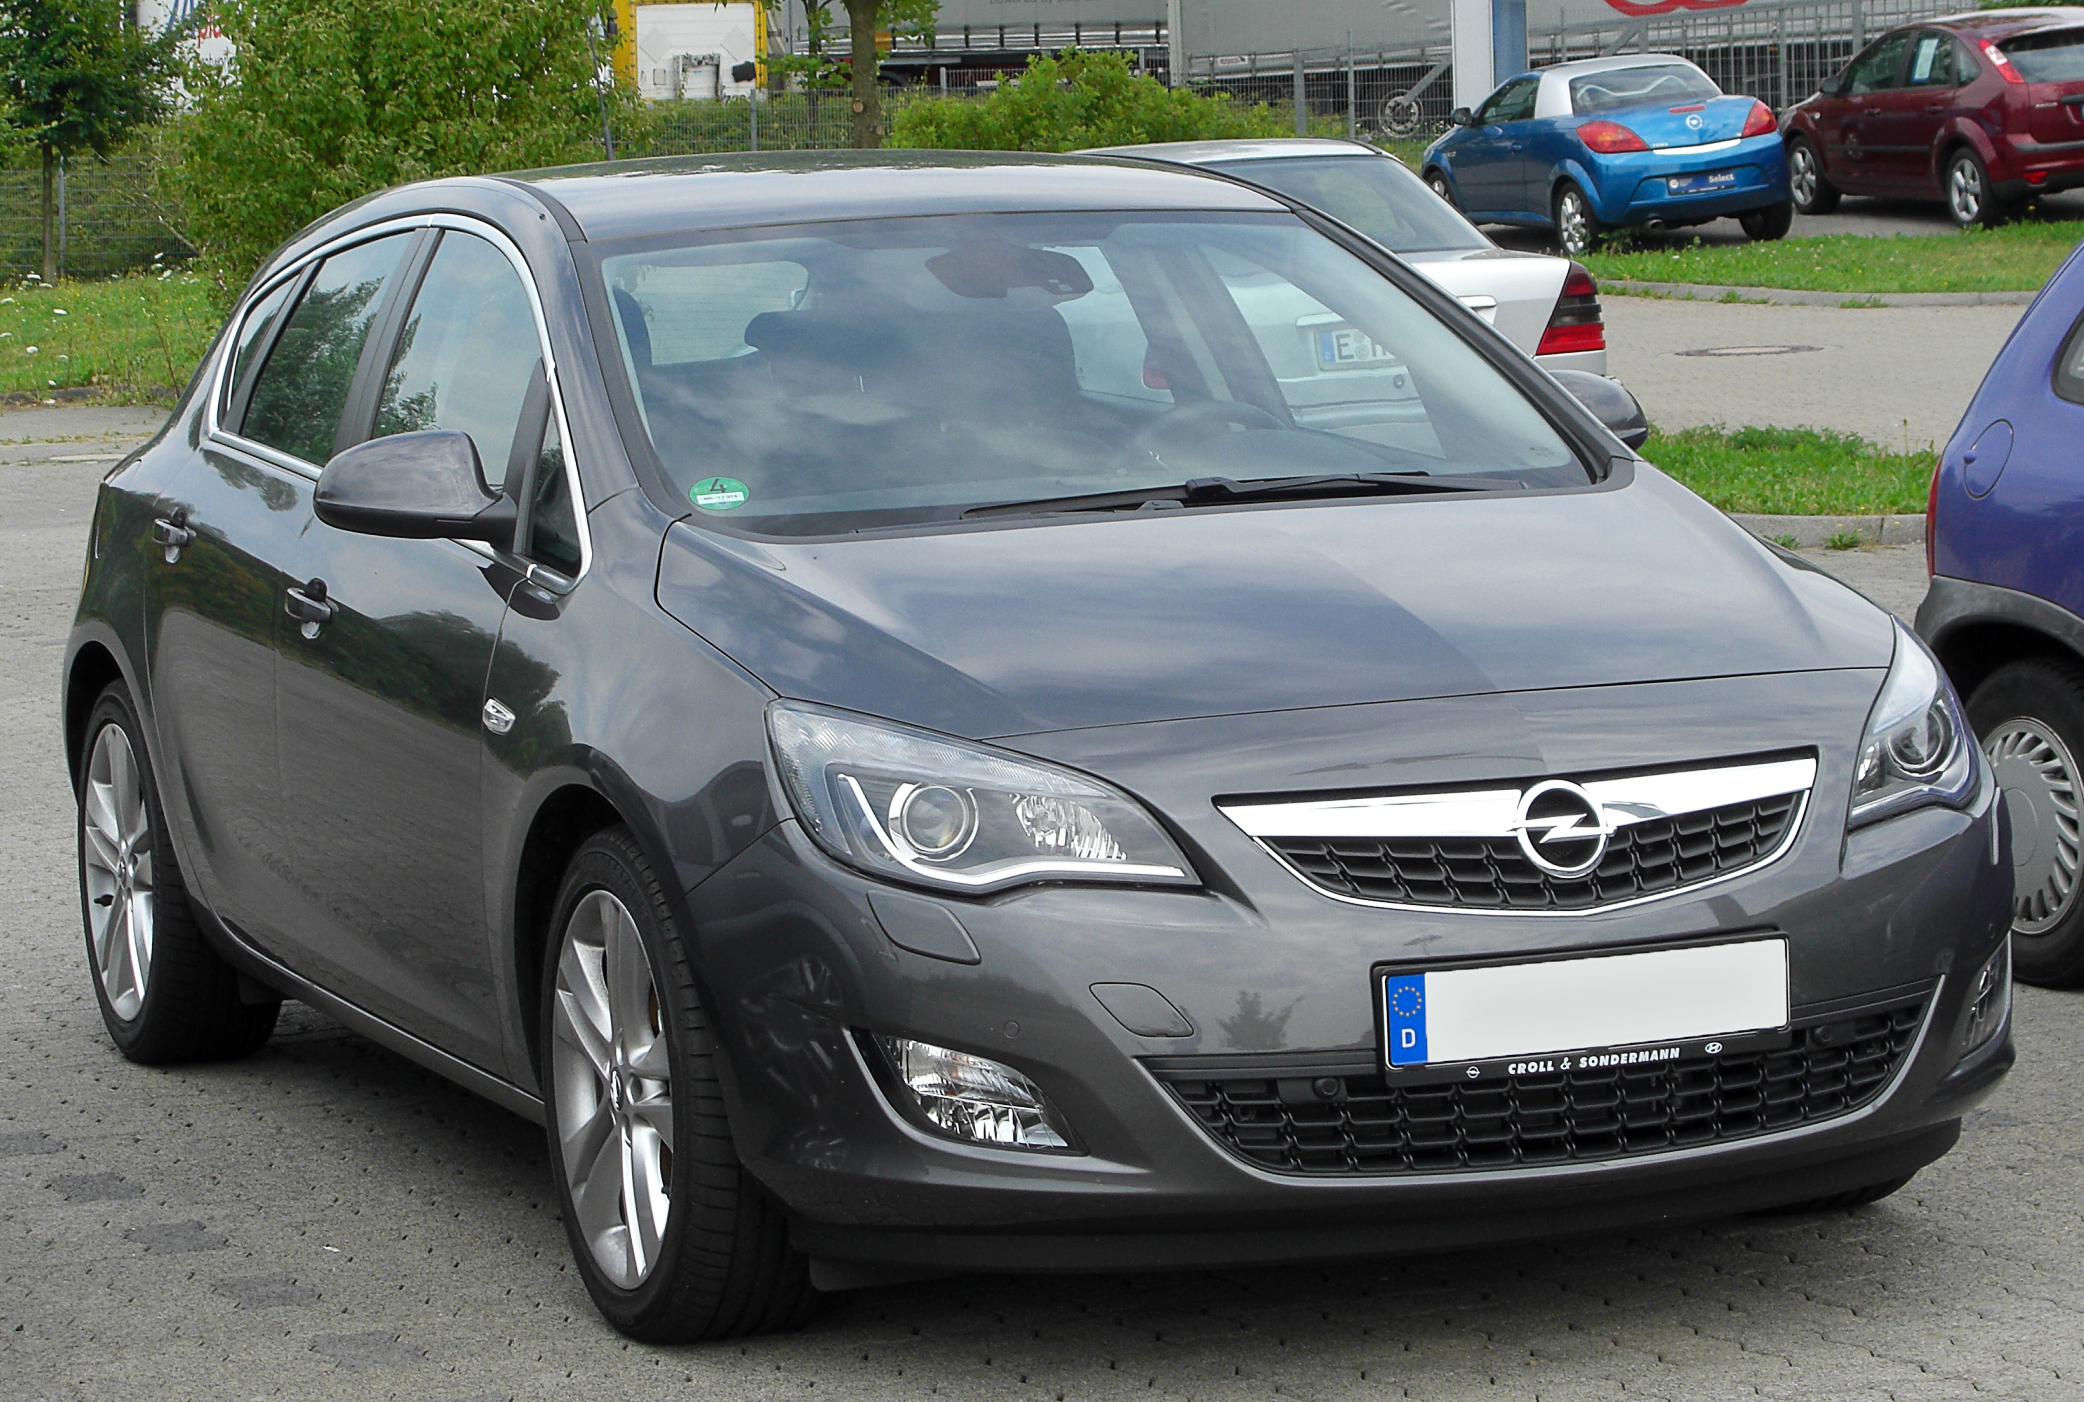 Opel Astra J front designed and manufactured Wallpapers Download